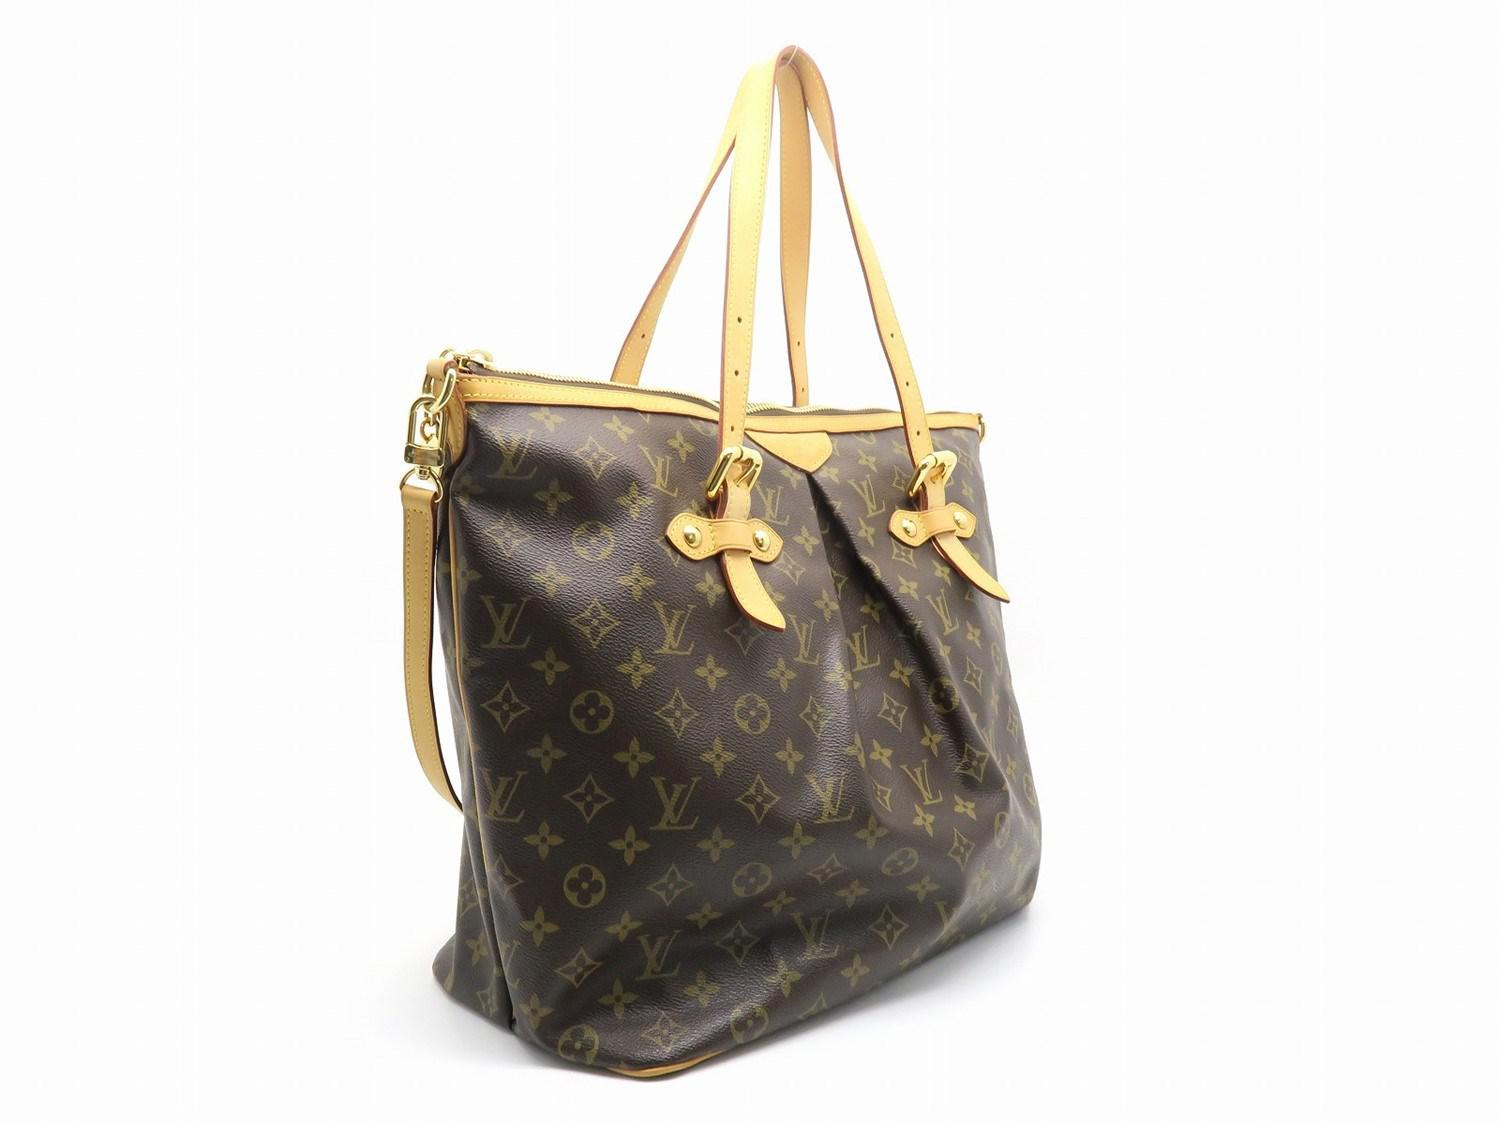 Louis Vuitton Tivoli Vs Palermo Lyst Louis Vuitton Monogram Palermo Gm Shoulder Bag Brown M40146